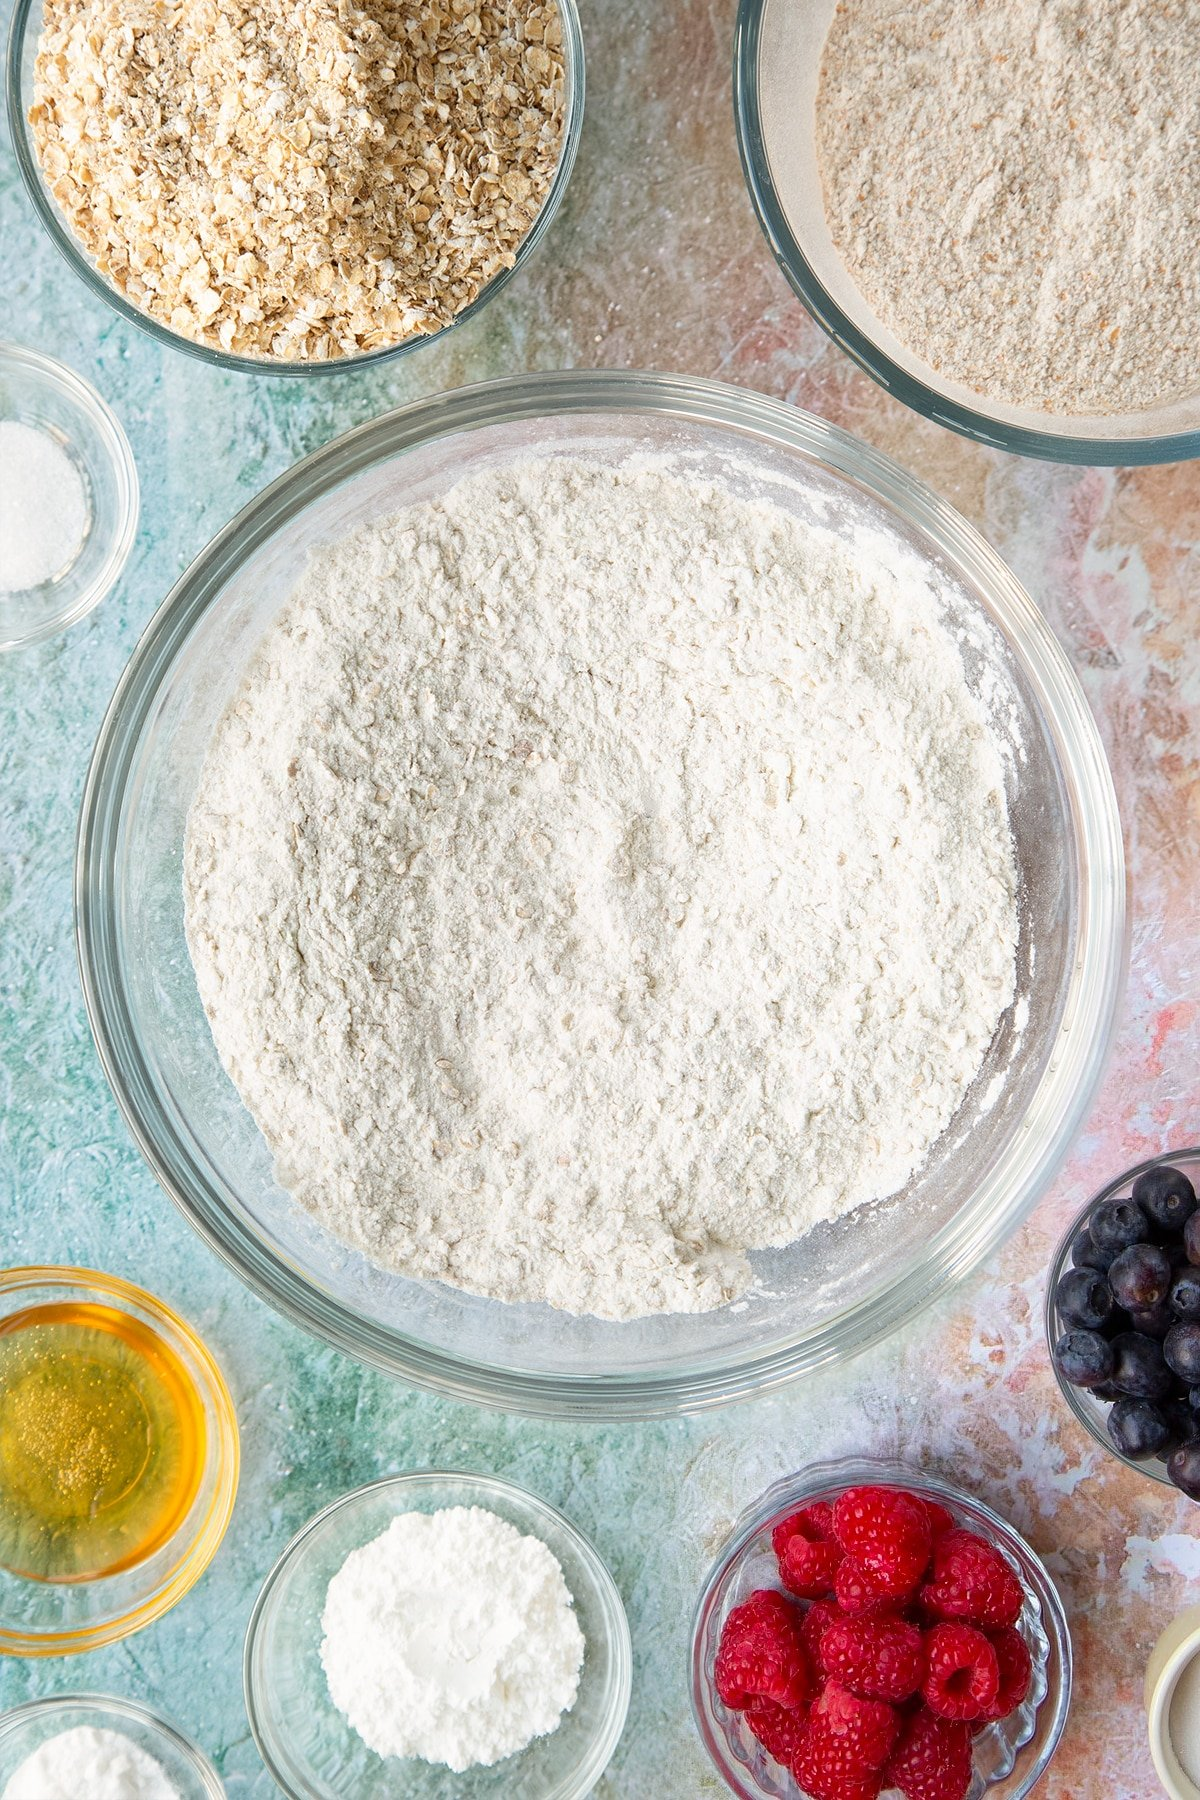 Self-raising flour, bicarbonate of soda, sugar and oats combined in a glass mixing bowl. Ingredients to make oatmeal scones surround the bowl.